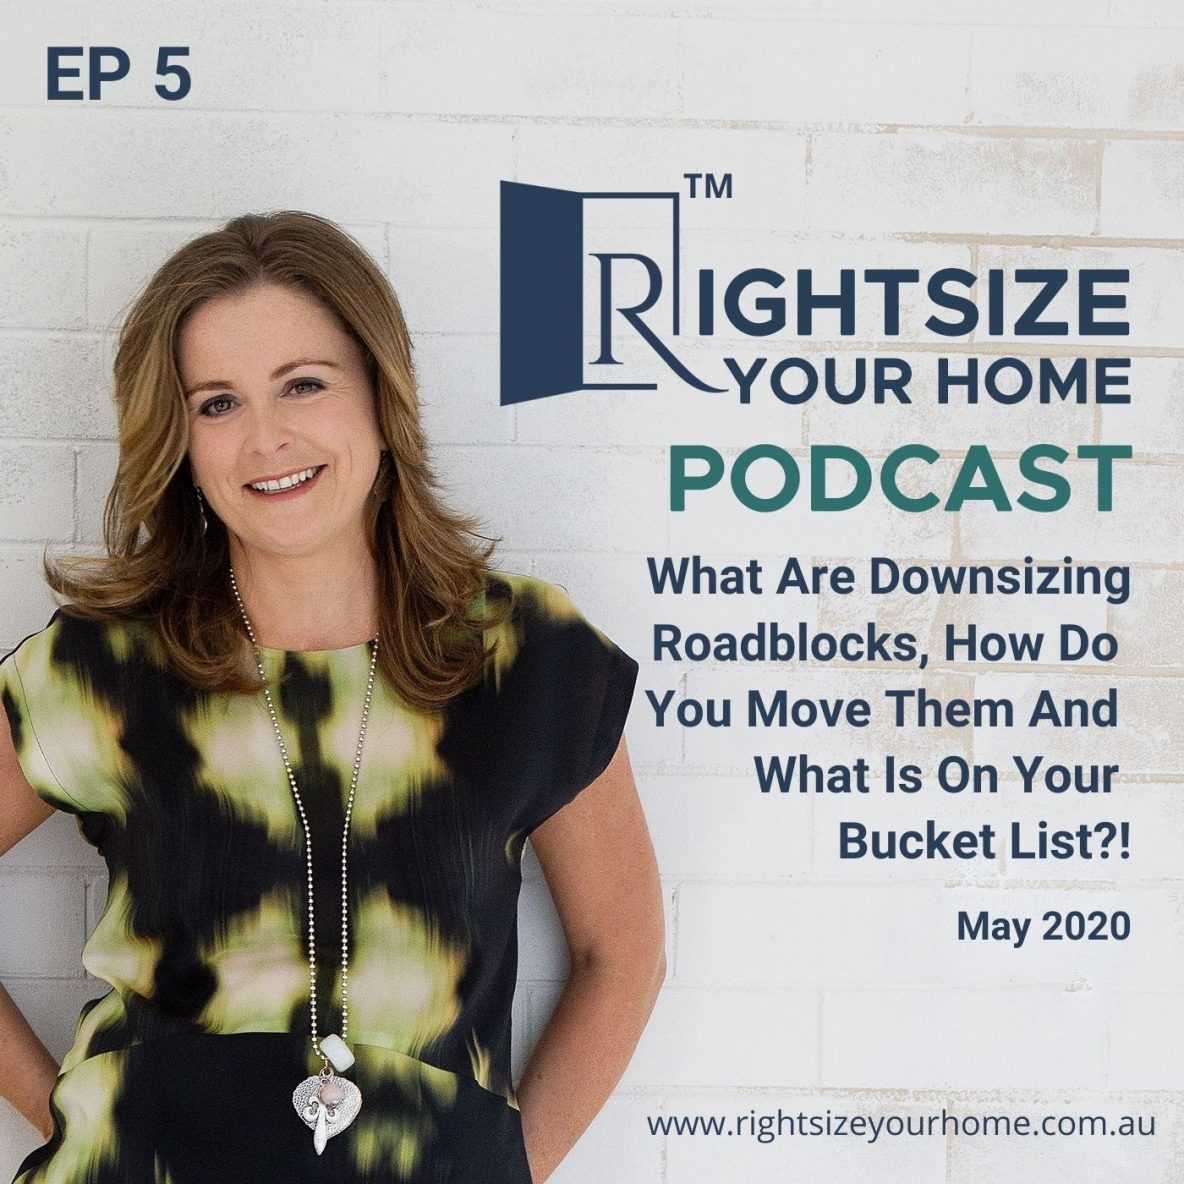 What Are Downsizing Roadblocks, How Do You Move Them And What Is On Your Bucket List?!